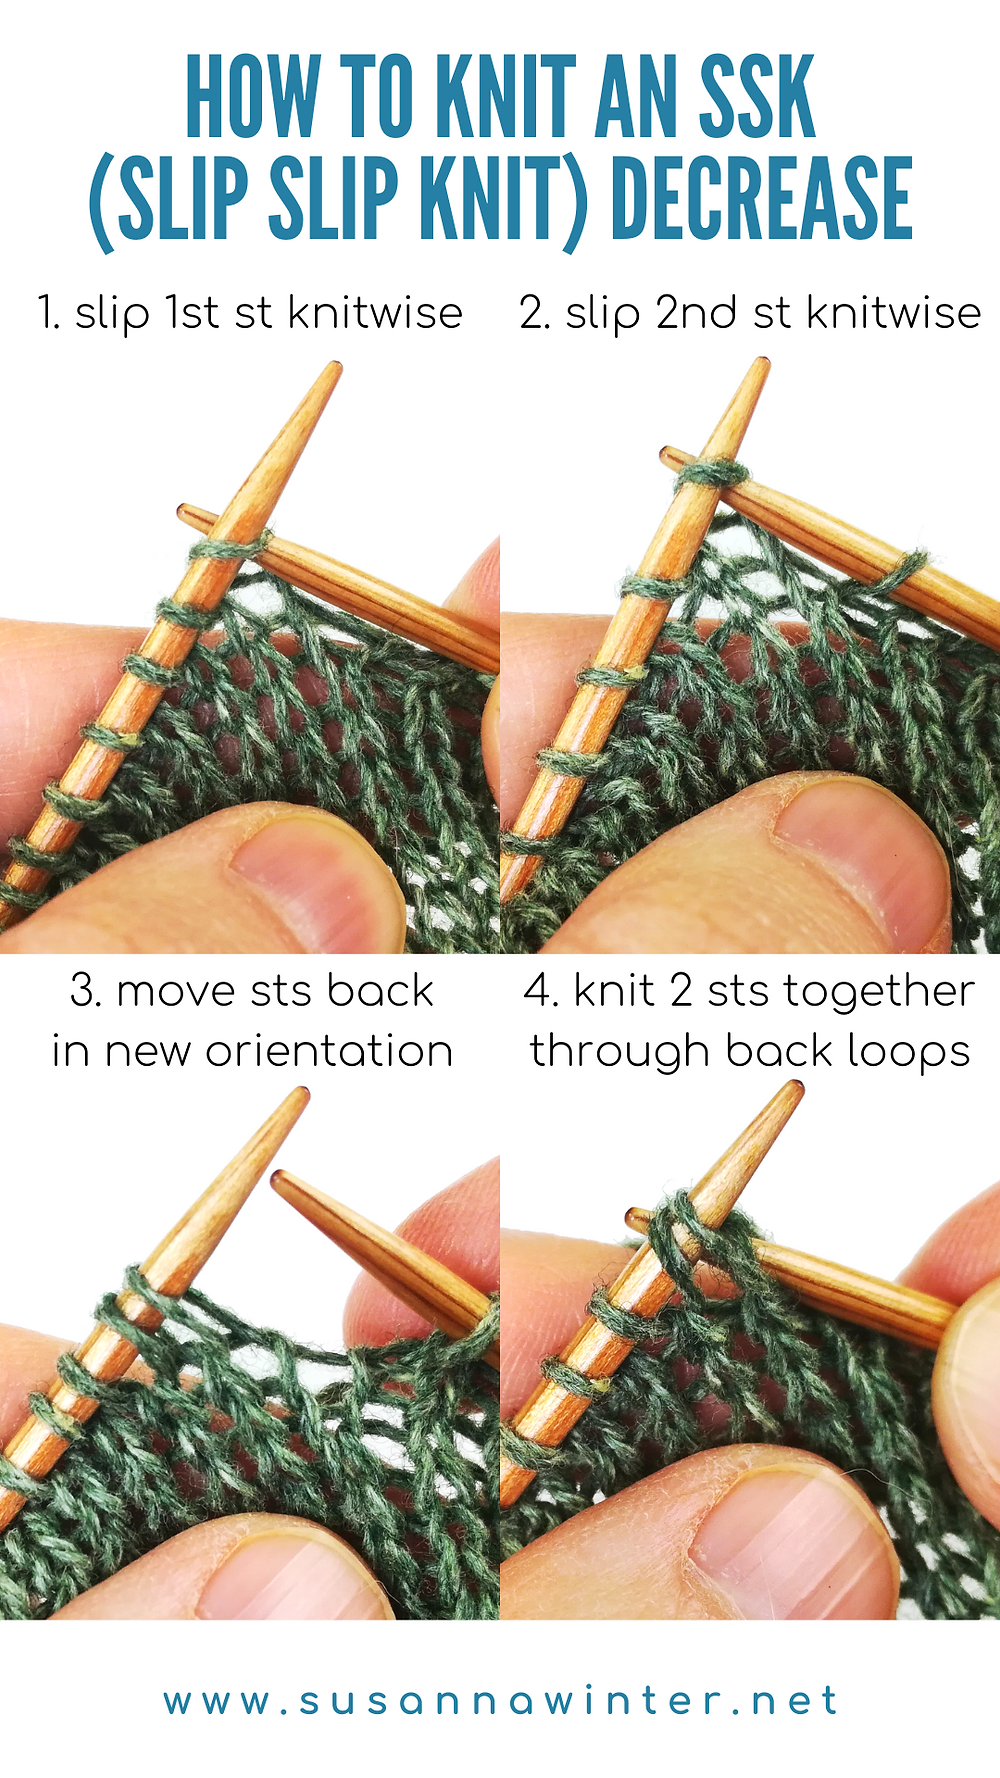 A four-step photo tutorial on how to knit an SSK (slip, slip, knit) decrease